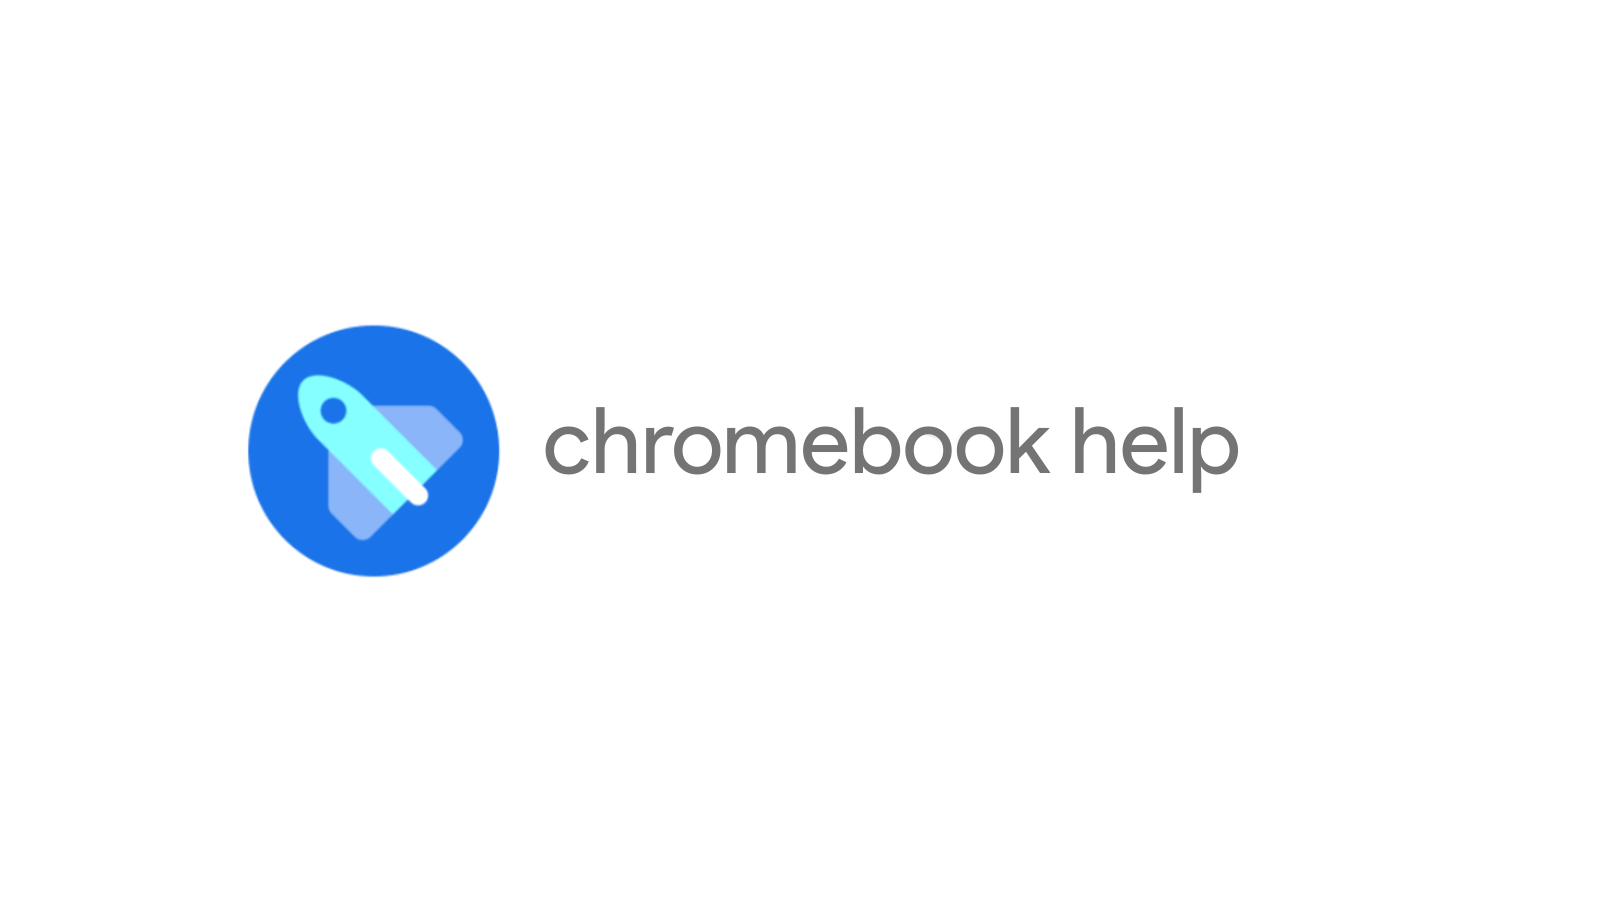 Chromebook help may soon be available through your launcher via the 'Everything button'